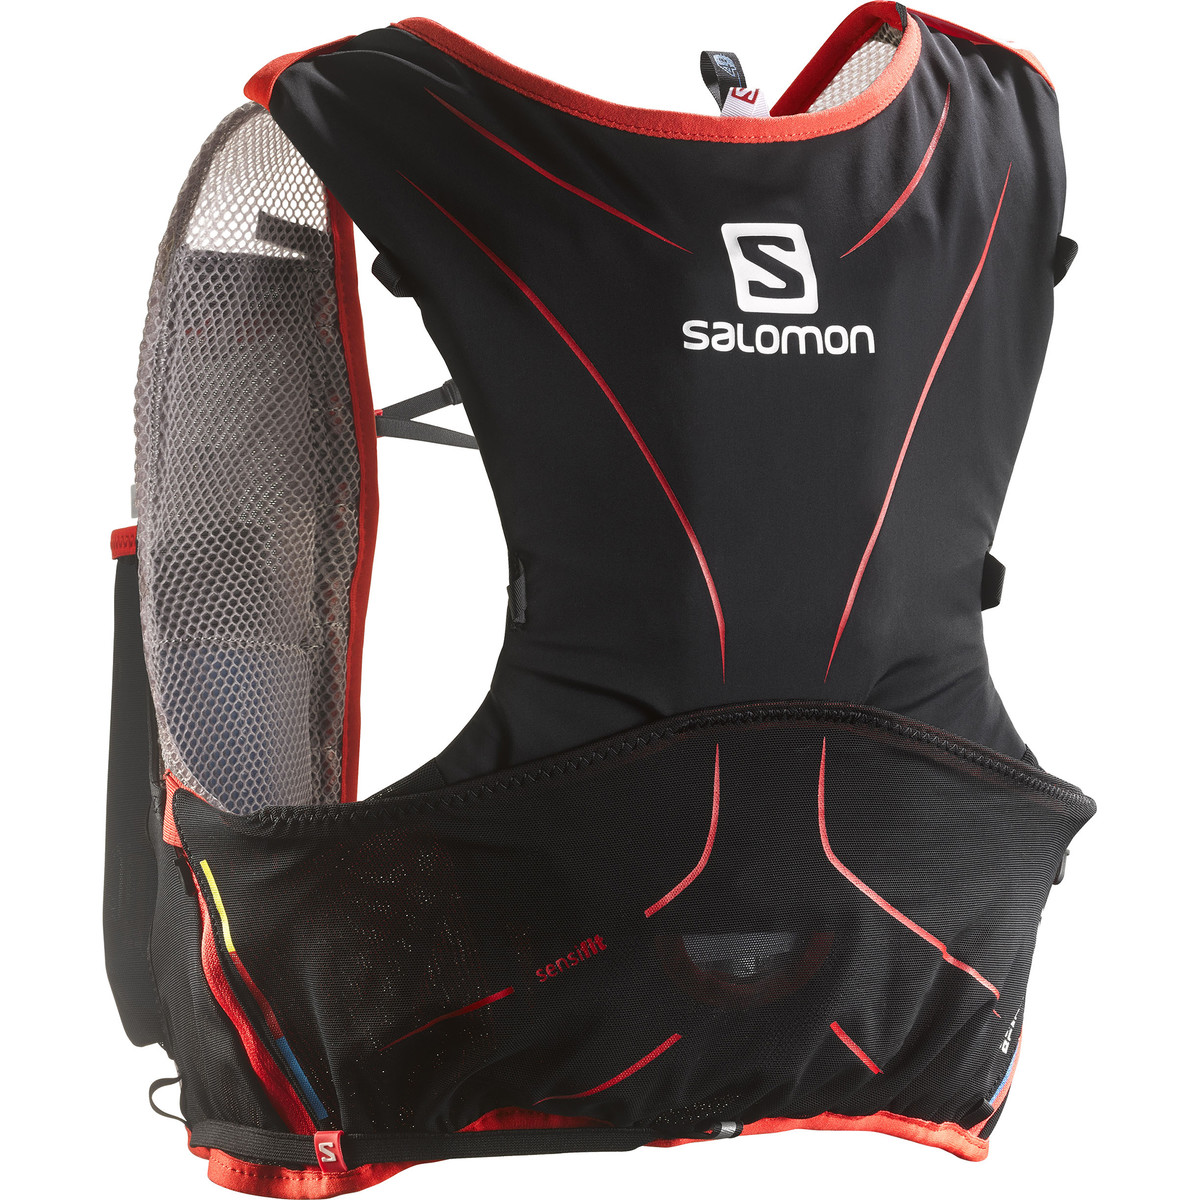 Salomon Advanced Skin S-Lab Hydro 5